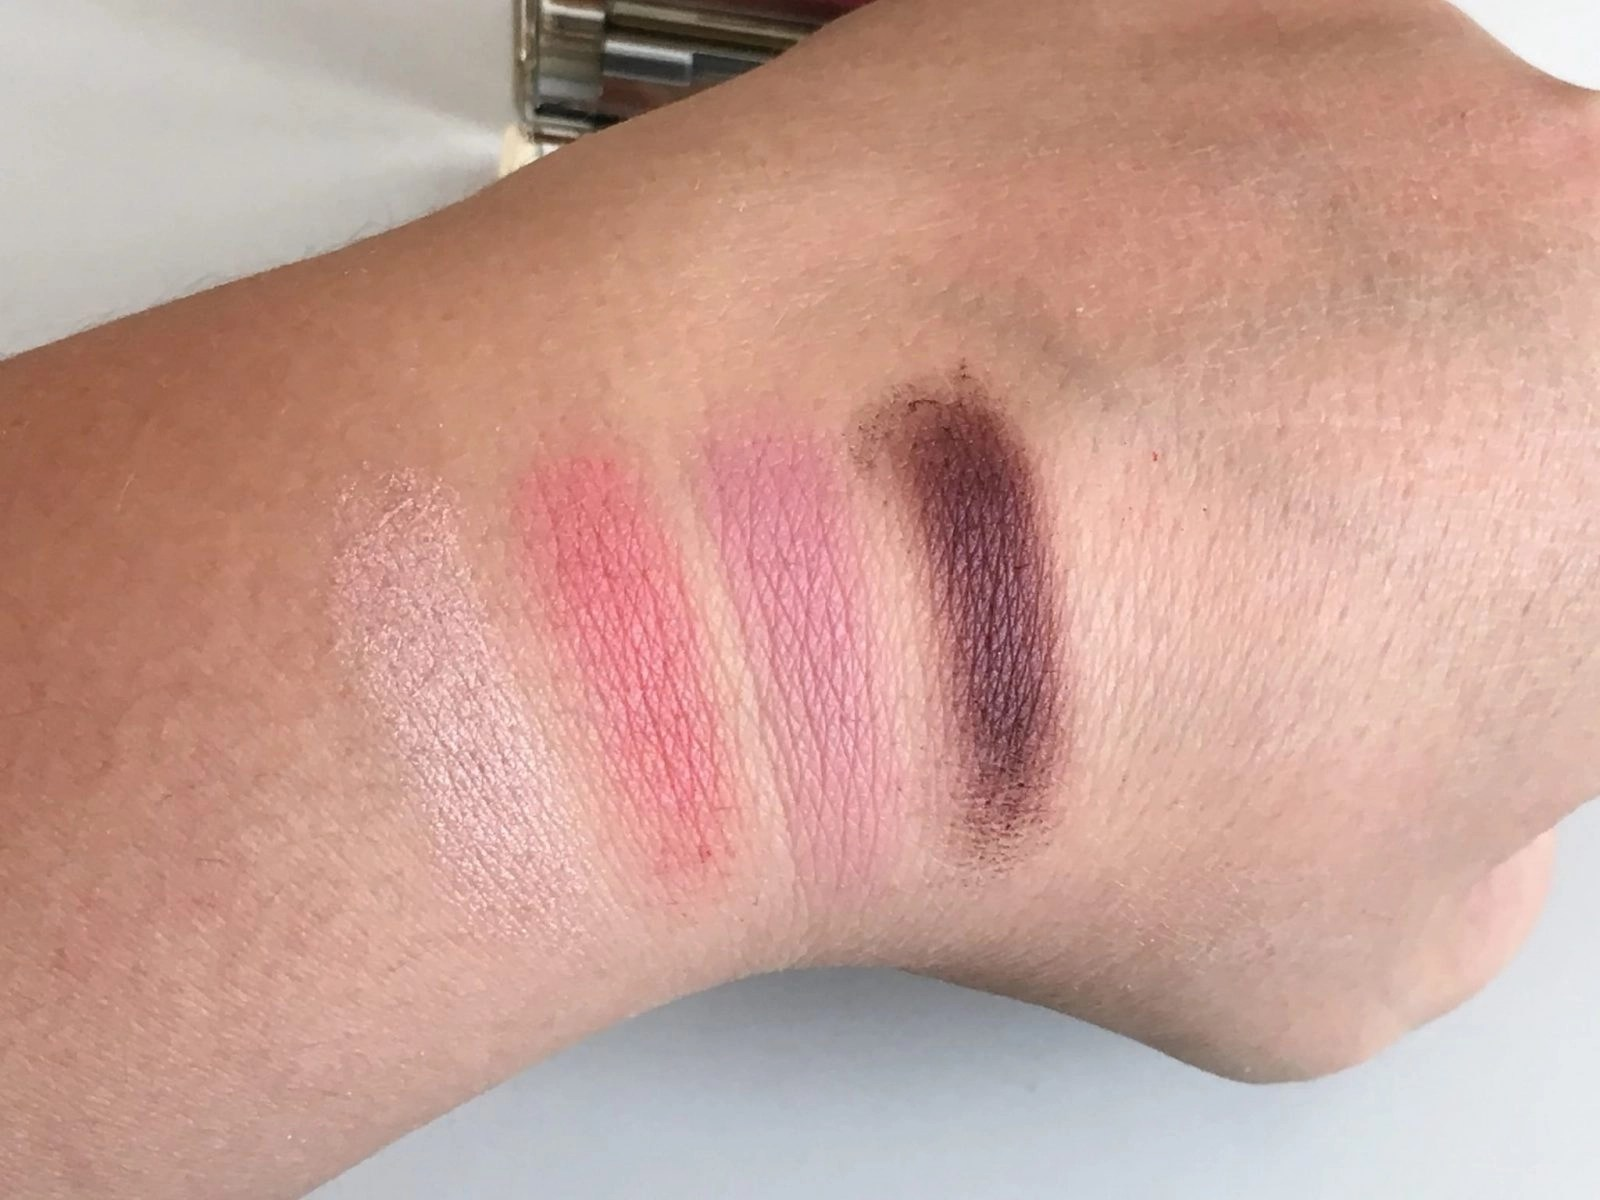 Clarins Eyeshadow Palette in Lovely Rose Swatched